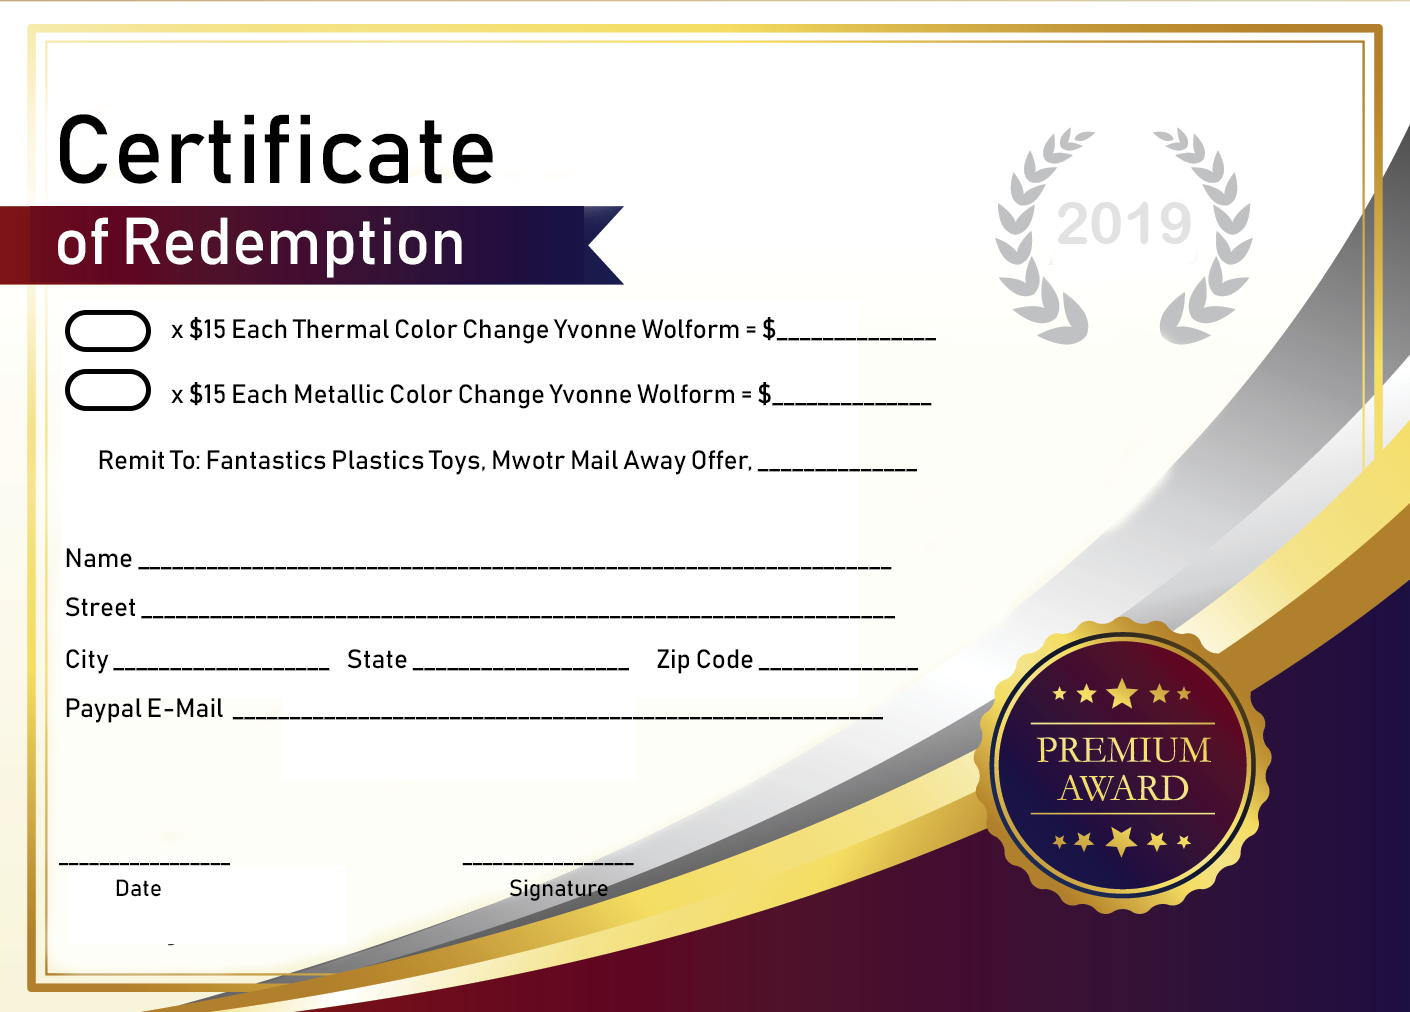 What is a Certificate of Redemption